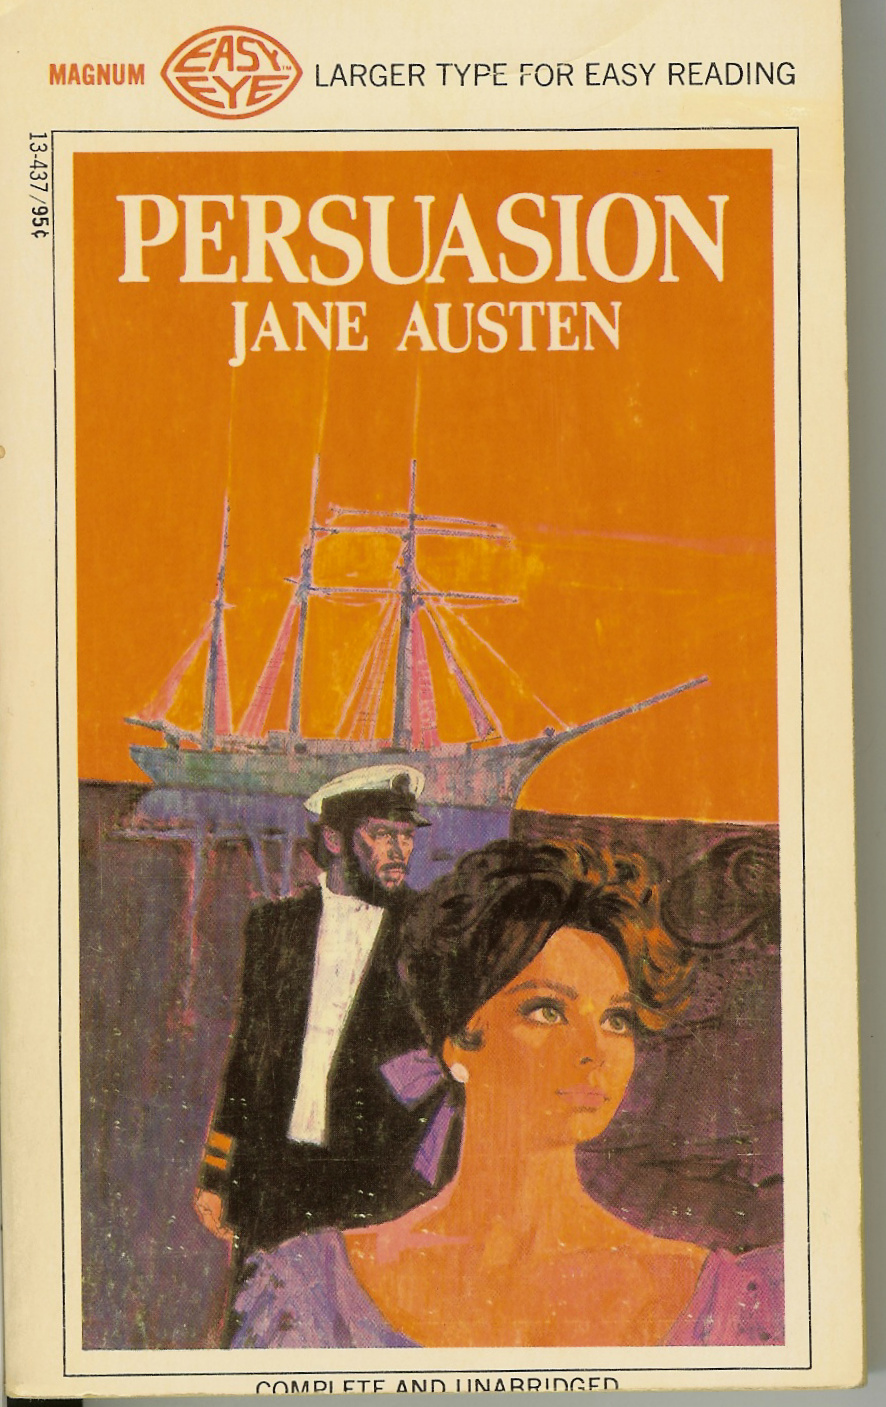 essay on persuasion by jane austen